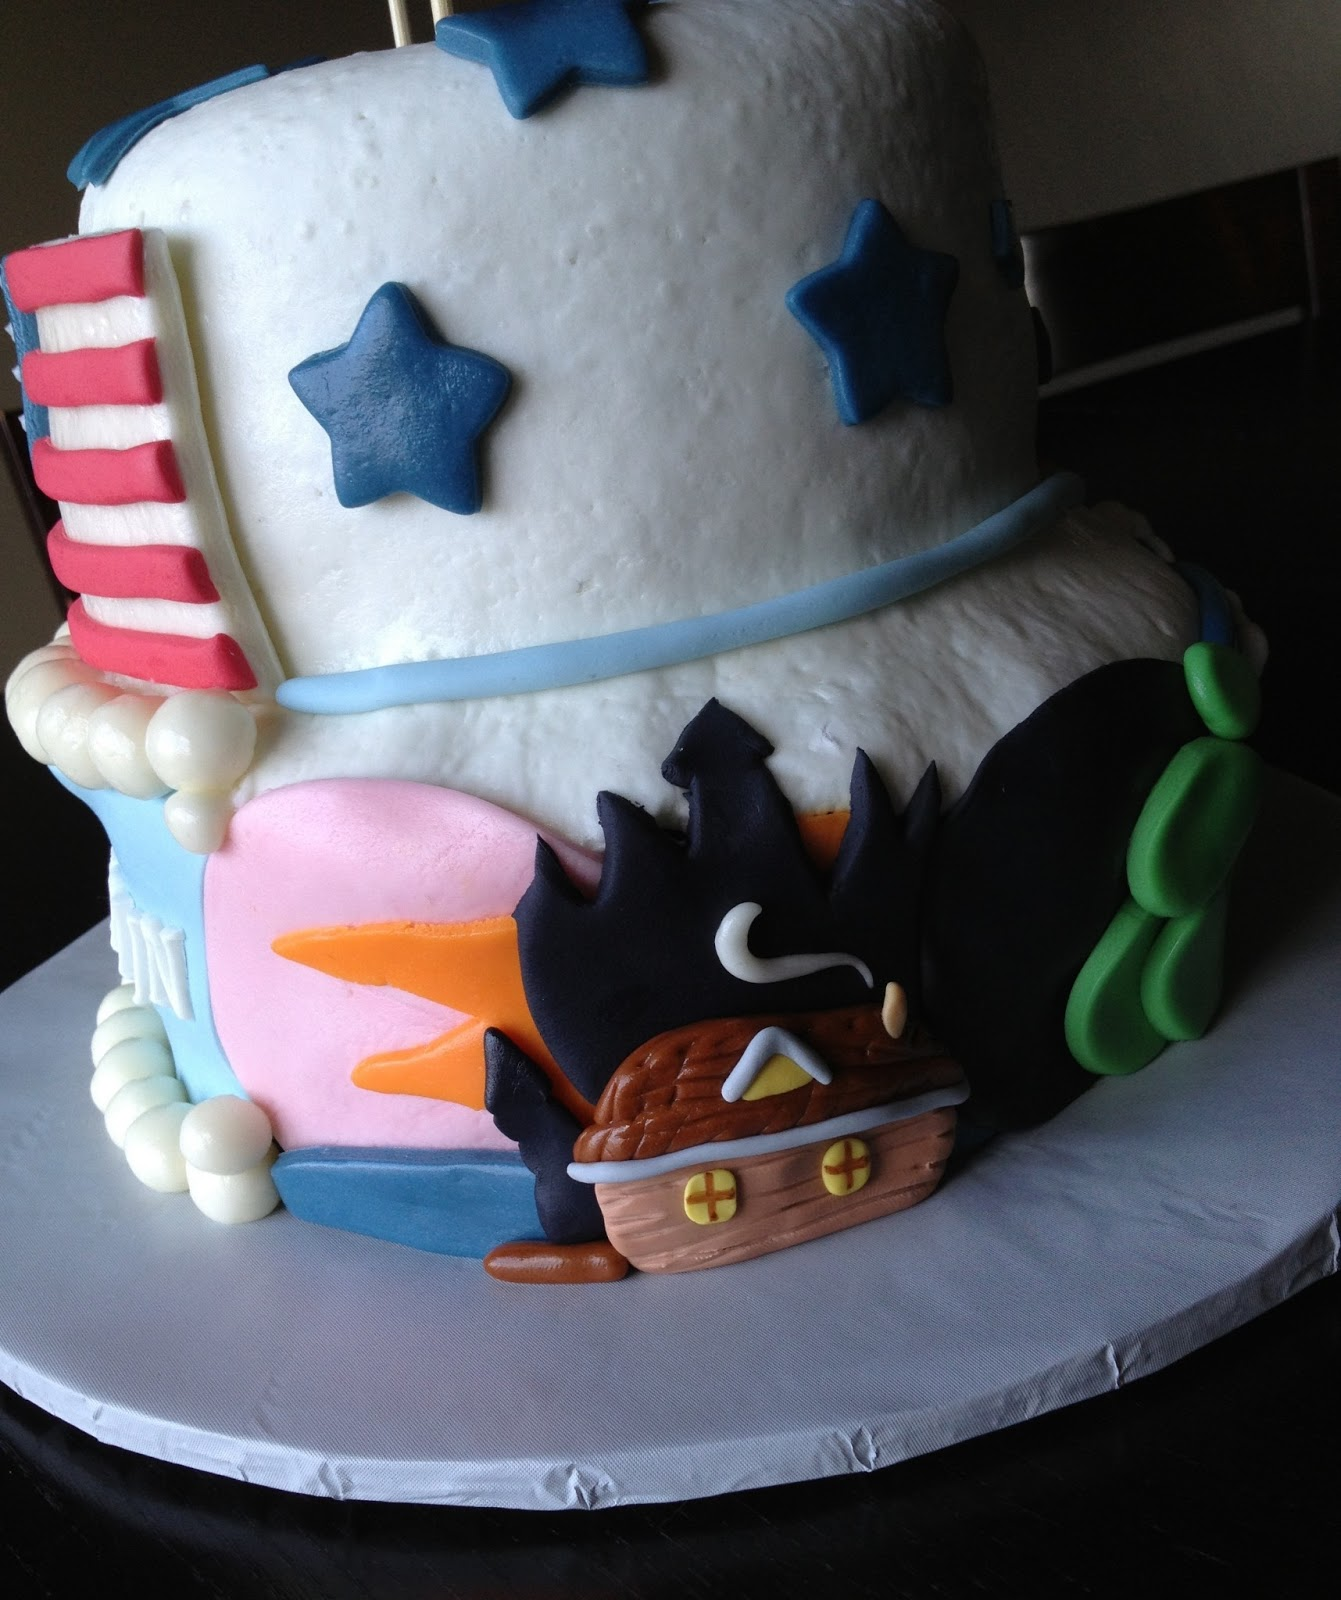 Custom Cakes By Julie: American Themed Cake